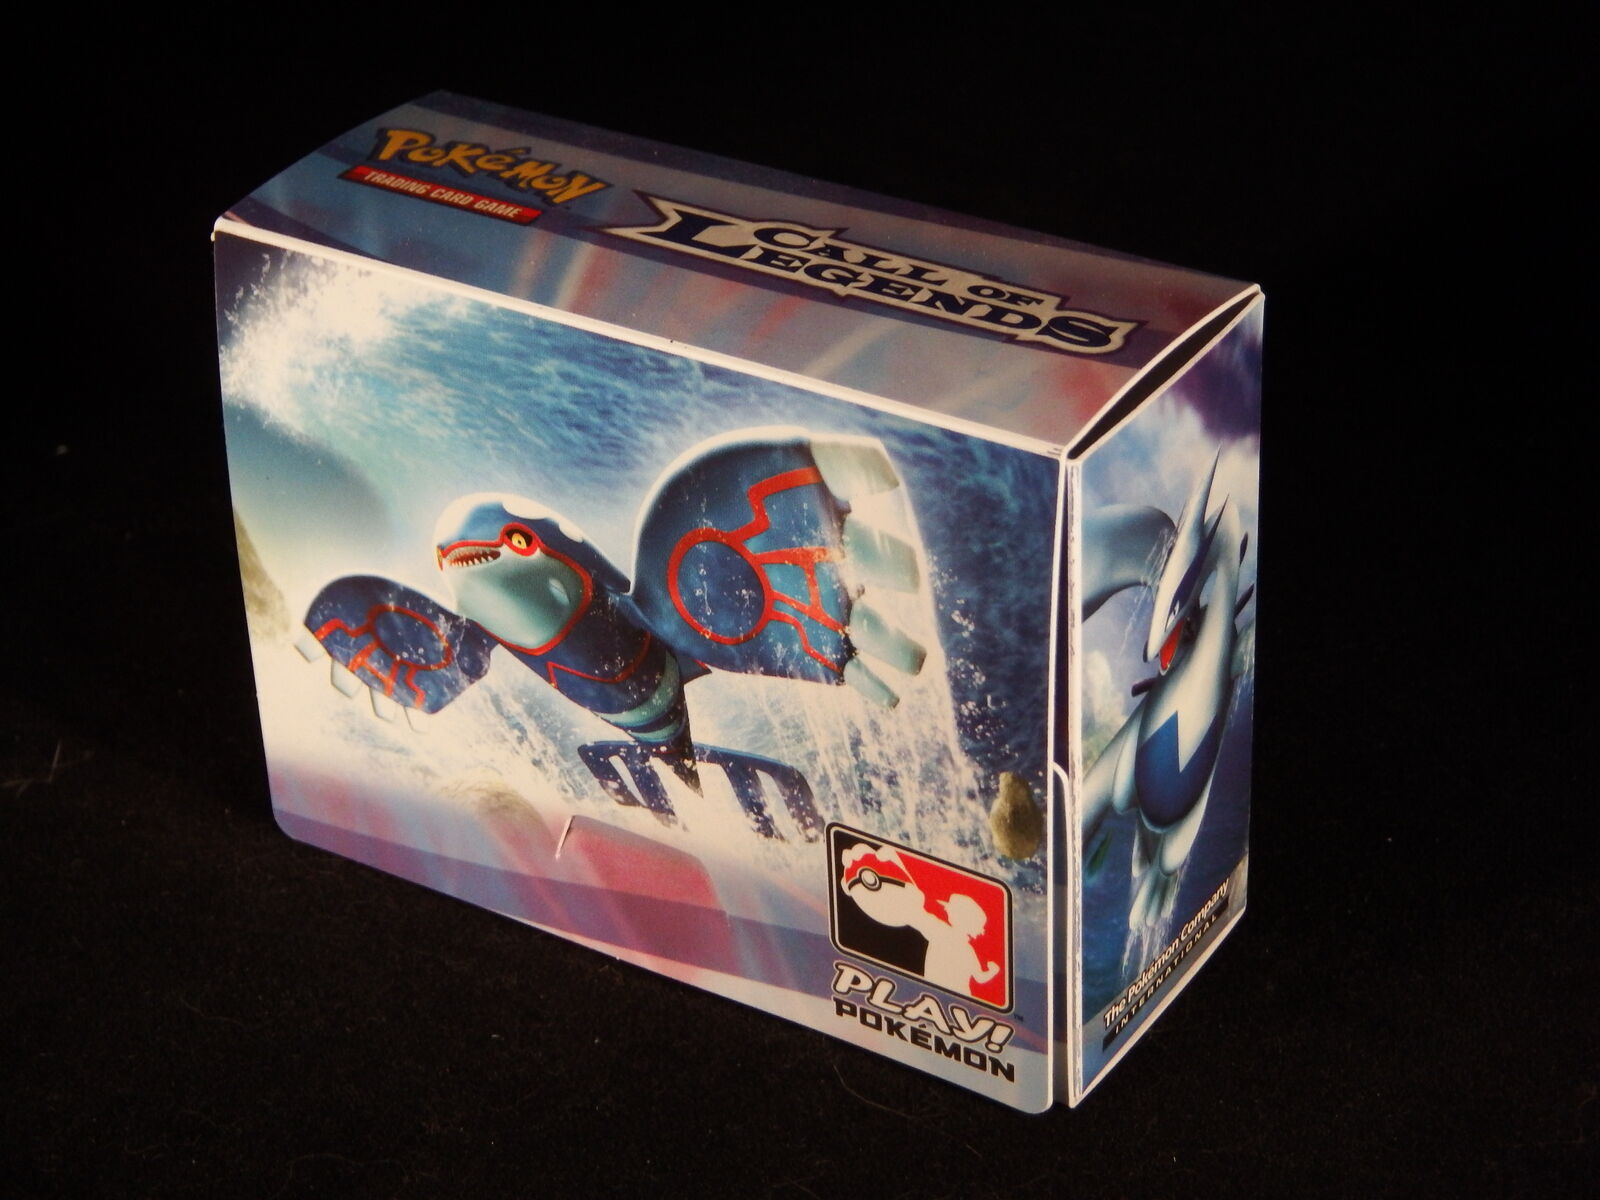 Pokémon Official Prerelease Deck Box: Call of Legends